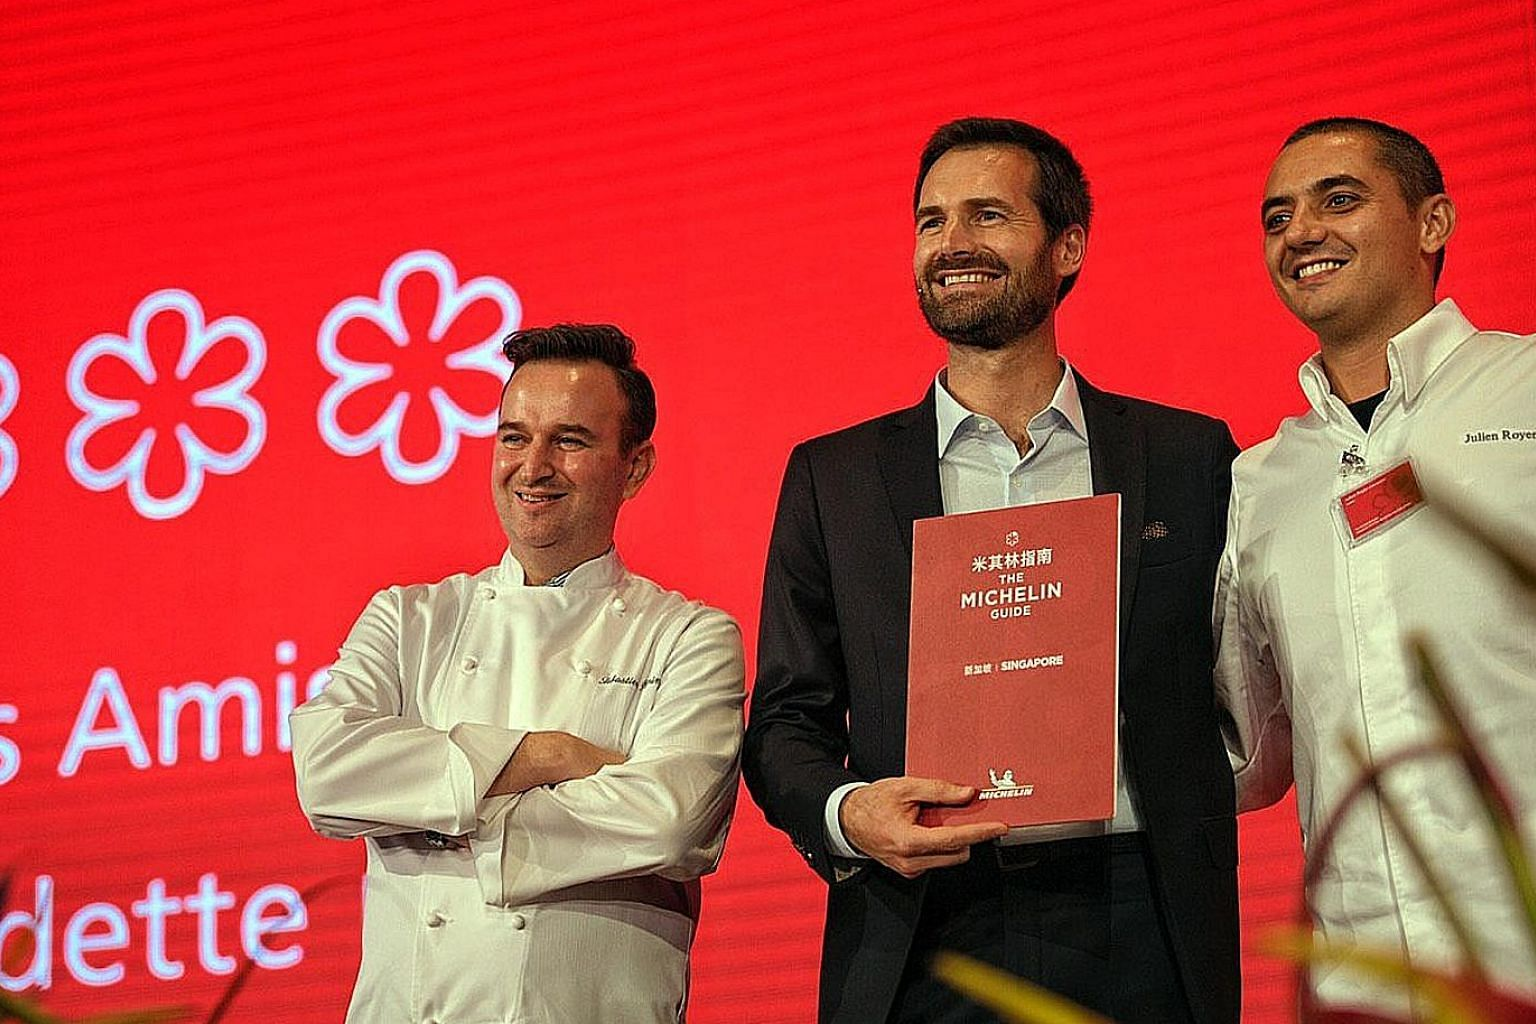 Chef Emmanuel Stroobant of Saint Pierre (far right) and chef Tristin Farmer of Zen, whose restaurants received two Michelin stars. Chef Sebastien Lepinoy (left) of Les Amis and chef-owner Julien Royer (right) of Odette with Mr Gwendal Poullennec, the